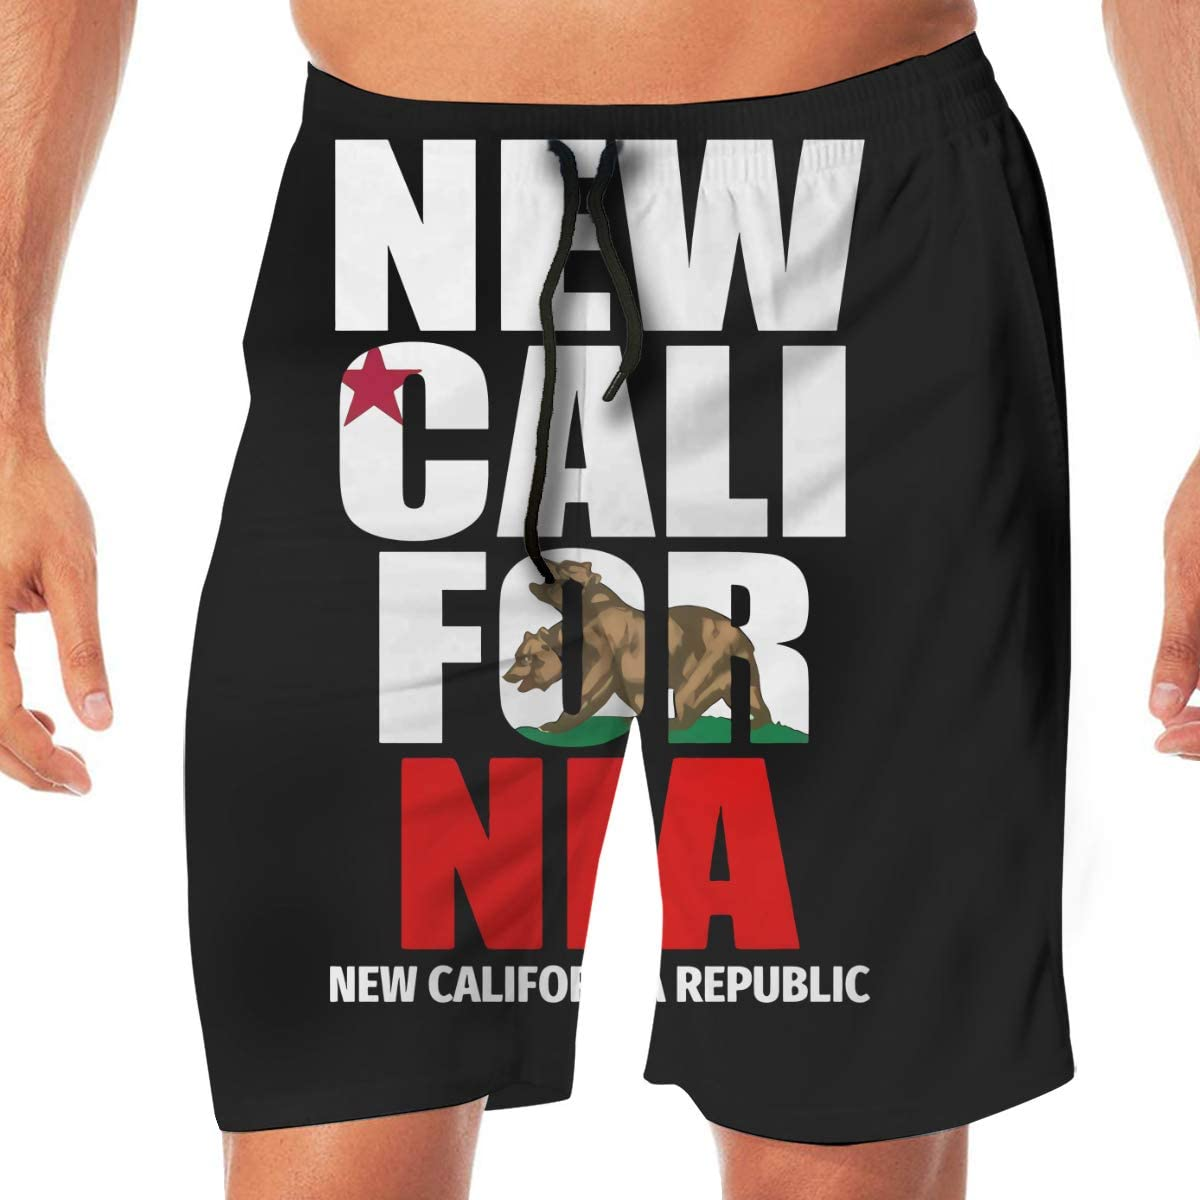 Gerneric New California Republic Quick Dryswim Trunks Water Shorts Swimsuit Beach Shorts